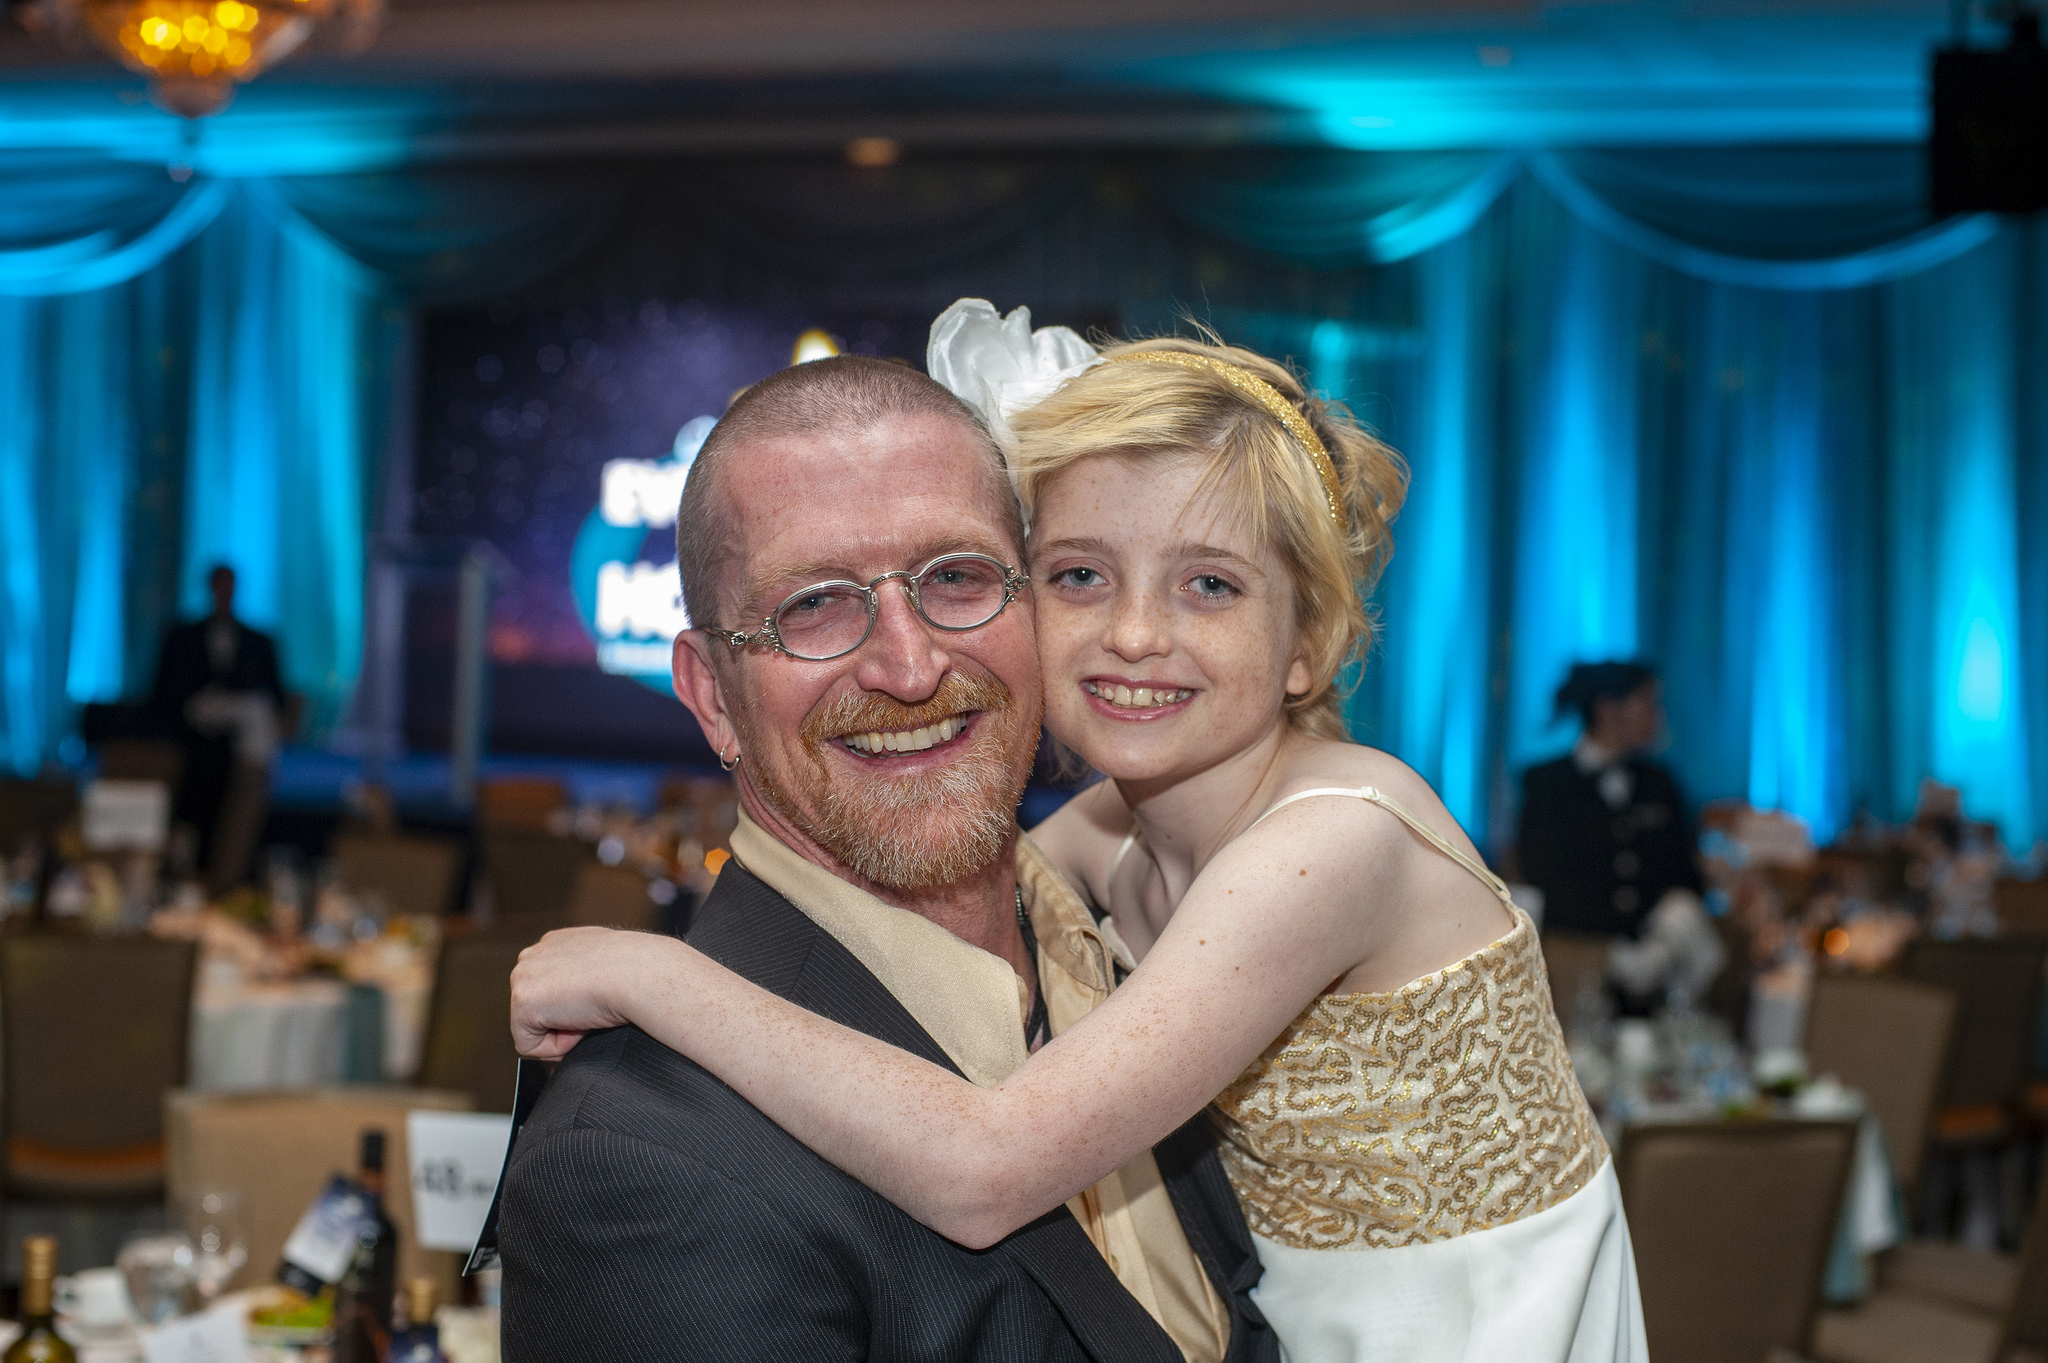 Farrah and her dad Andy Mackenzie at Hope